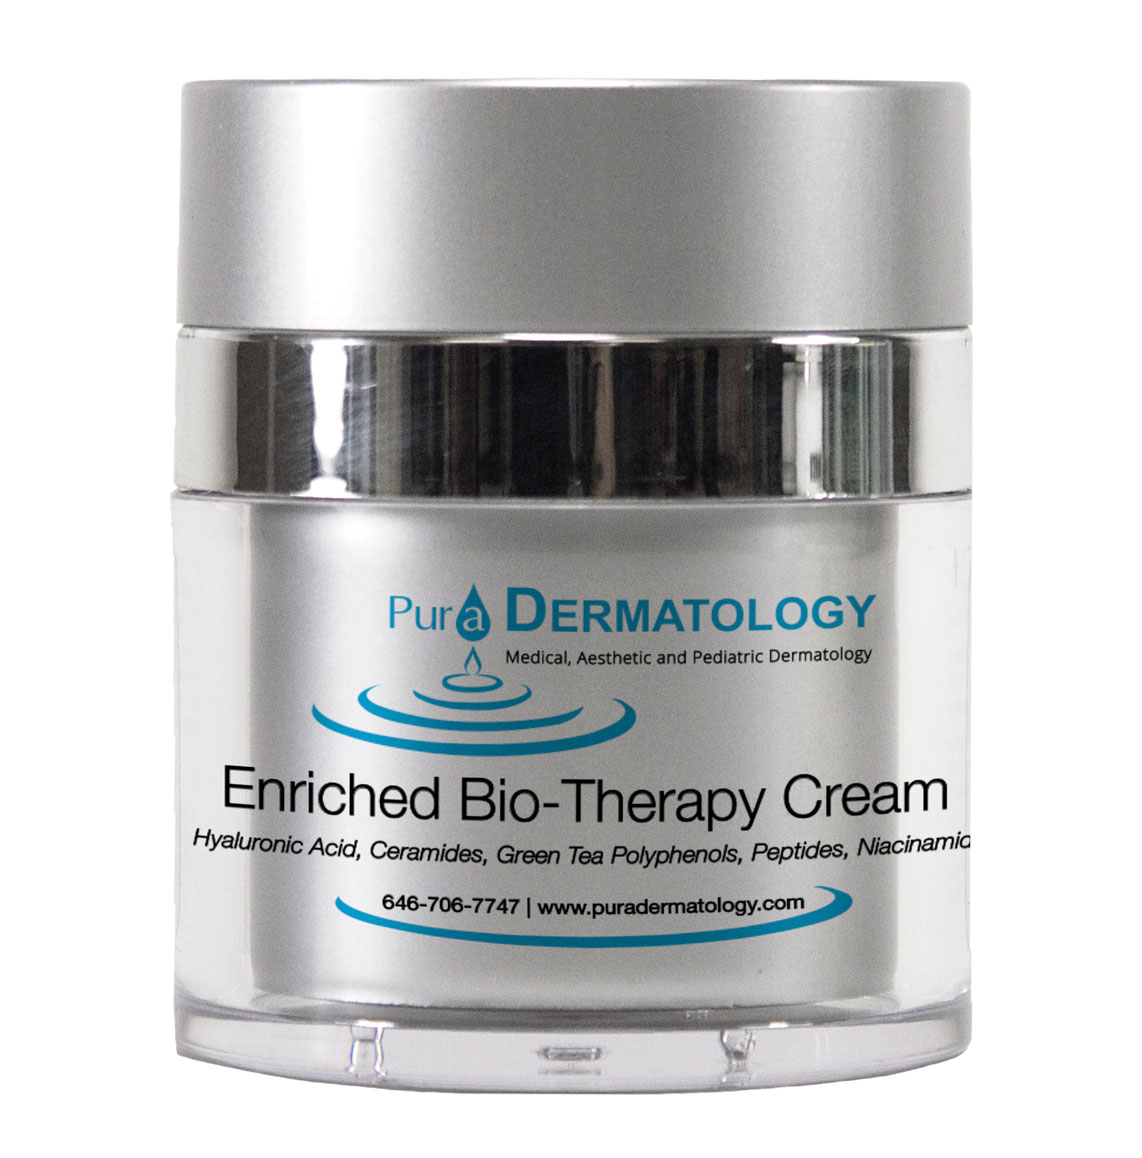 Enriched Bio-Therapy Cream